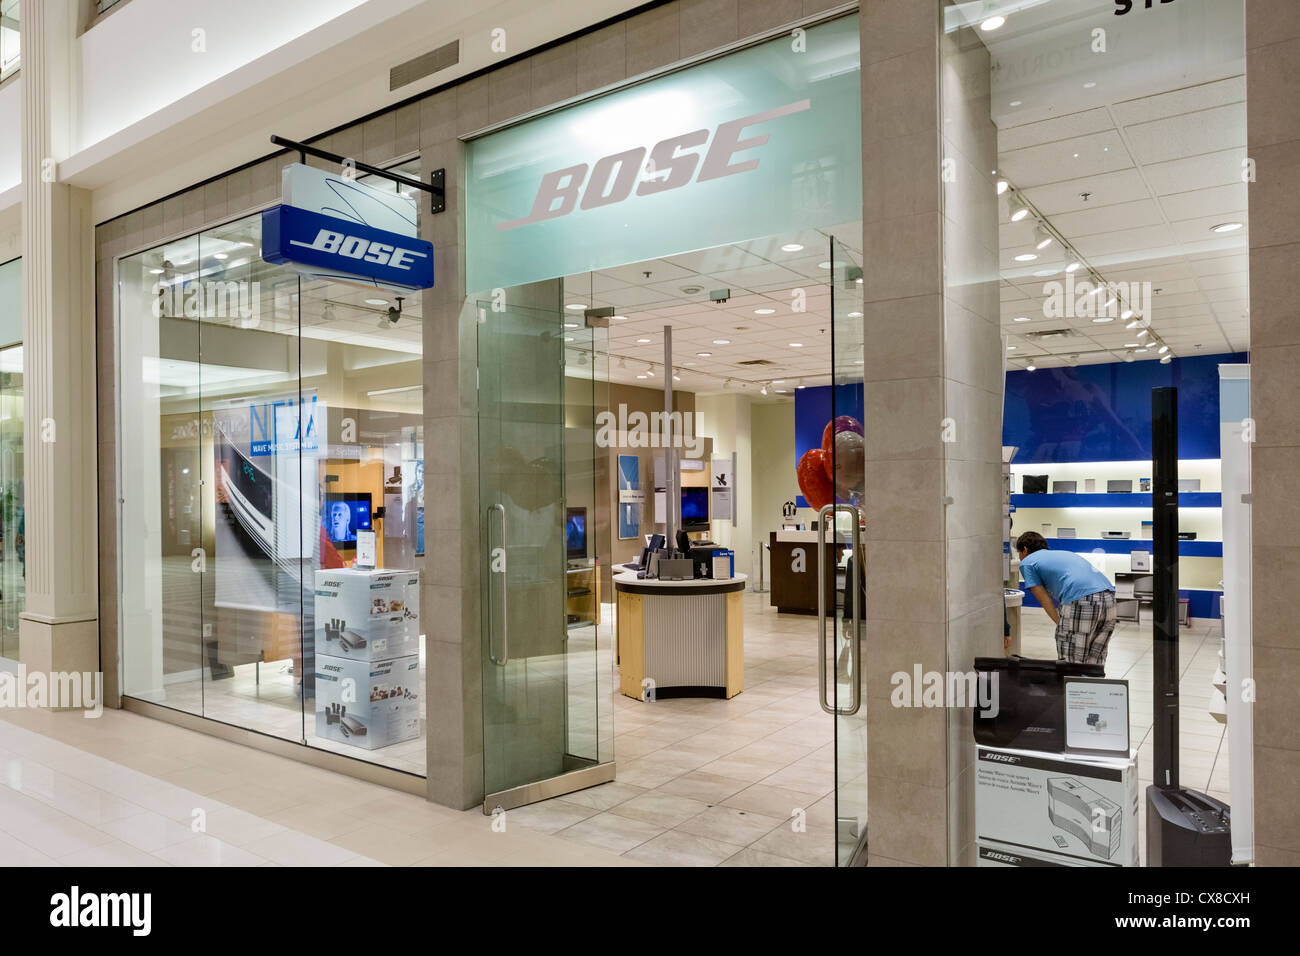 bose outlet store. bose store in the mall of america, bloomington, minneapolis, minnesota, usa outlet